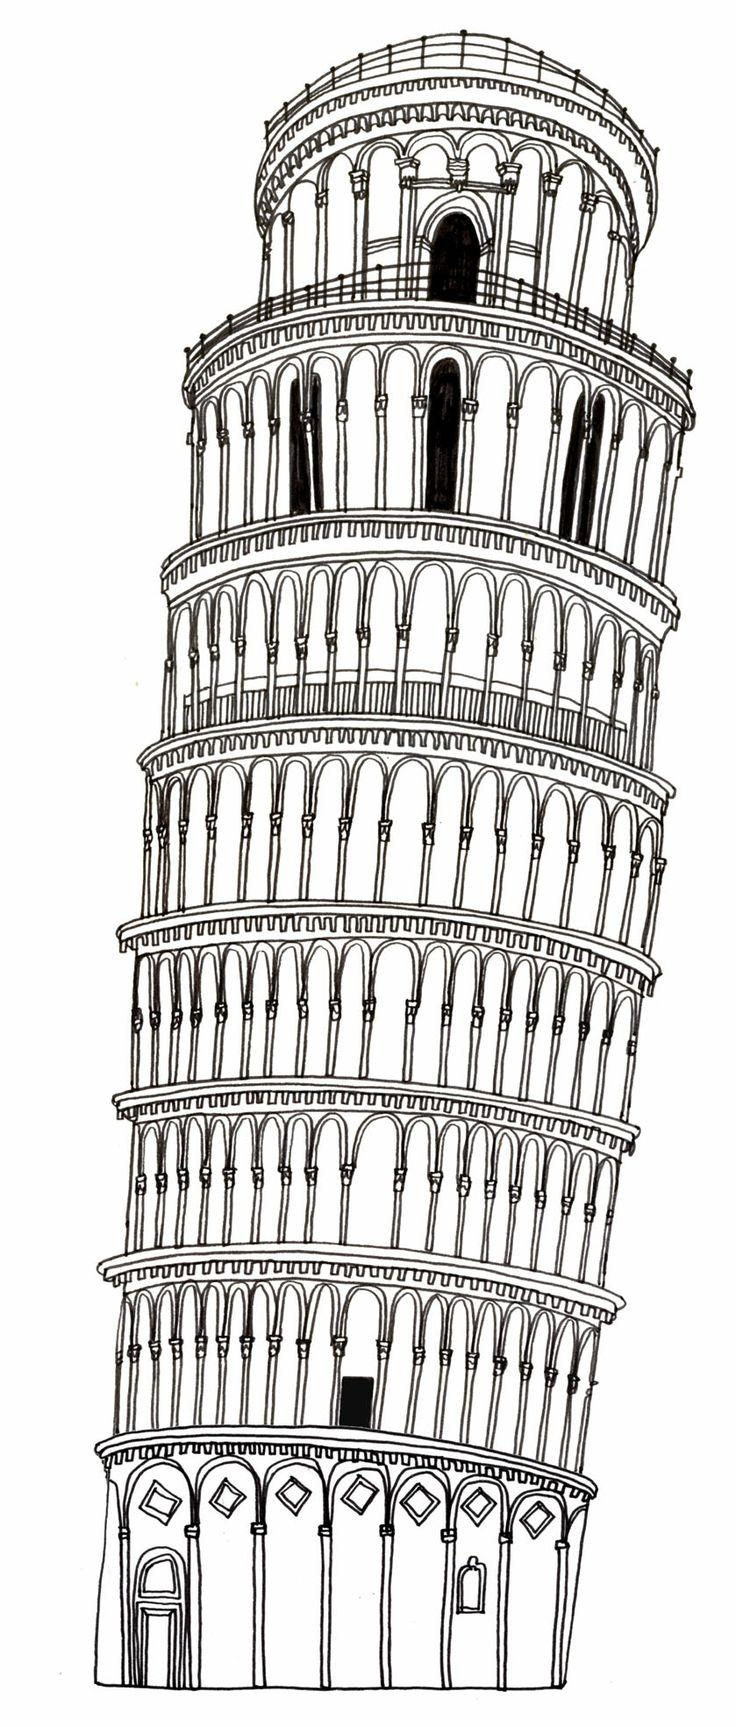 153 Best Italy Illustrations Images On Pinterest | Travel Intended For Italian Cities Wall Art (View 13 of 20)